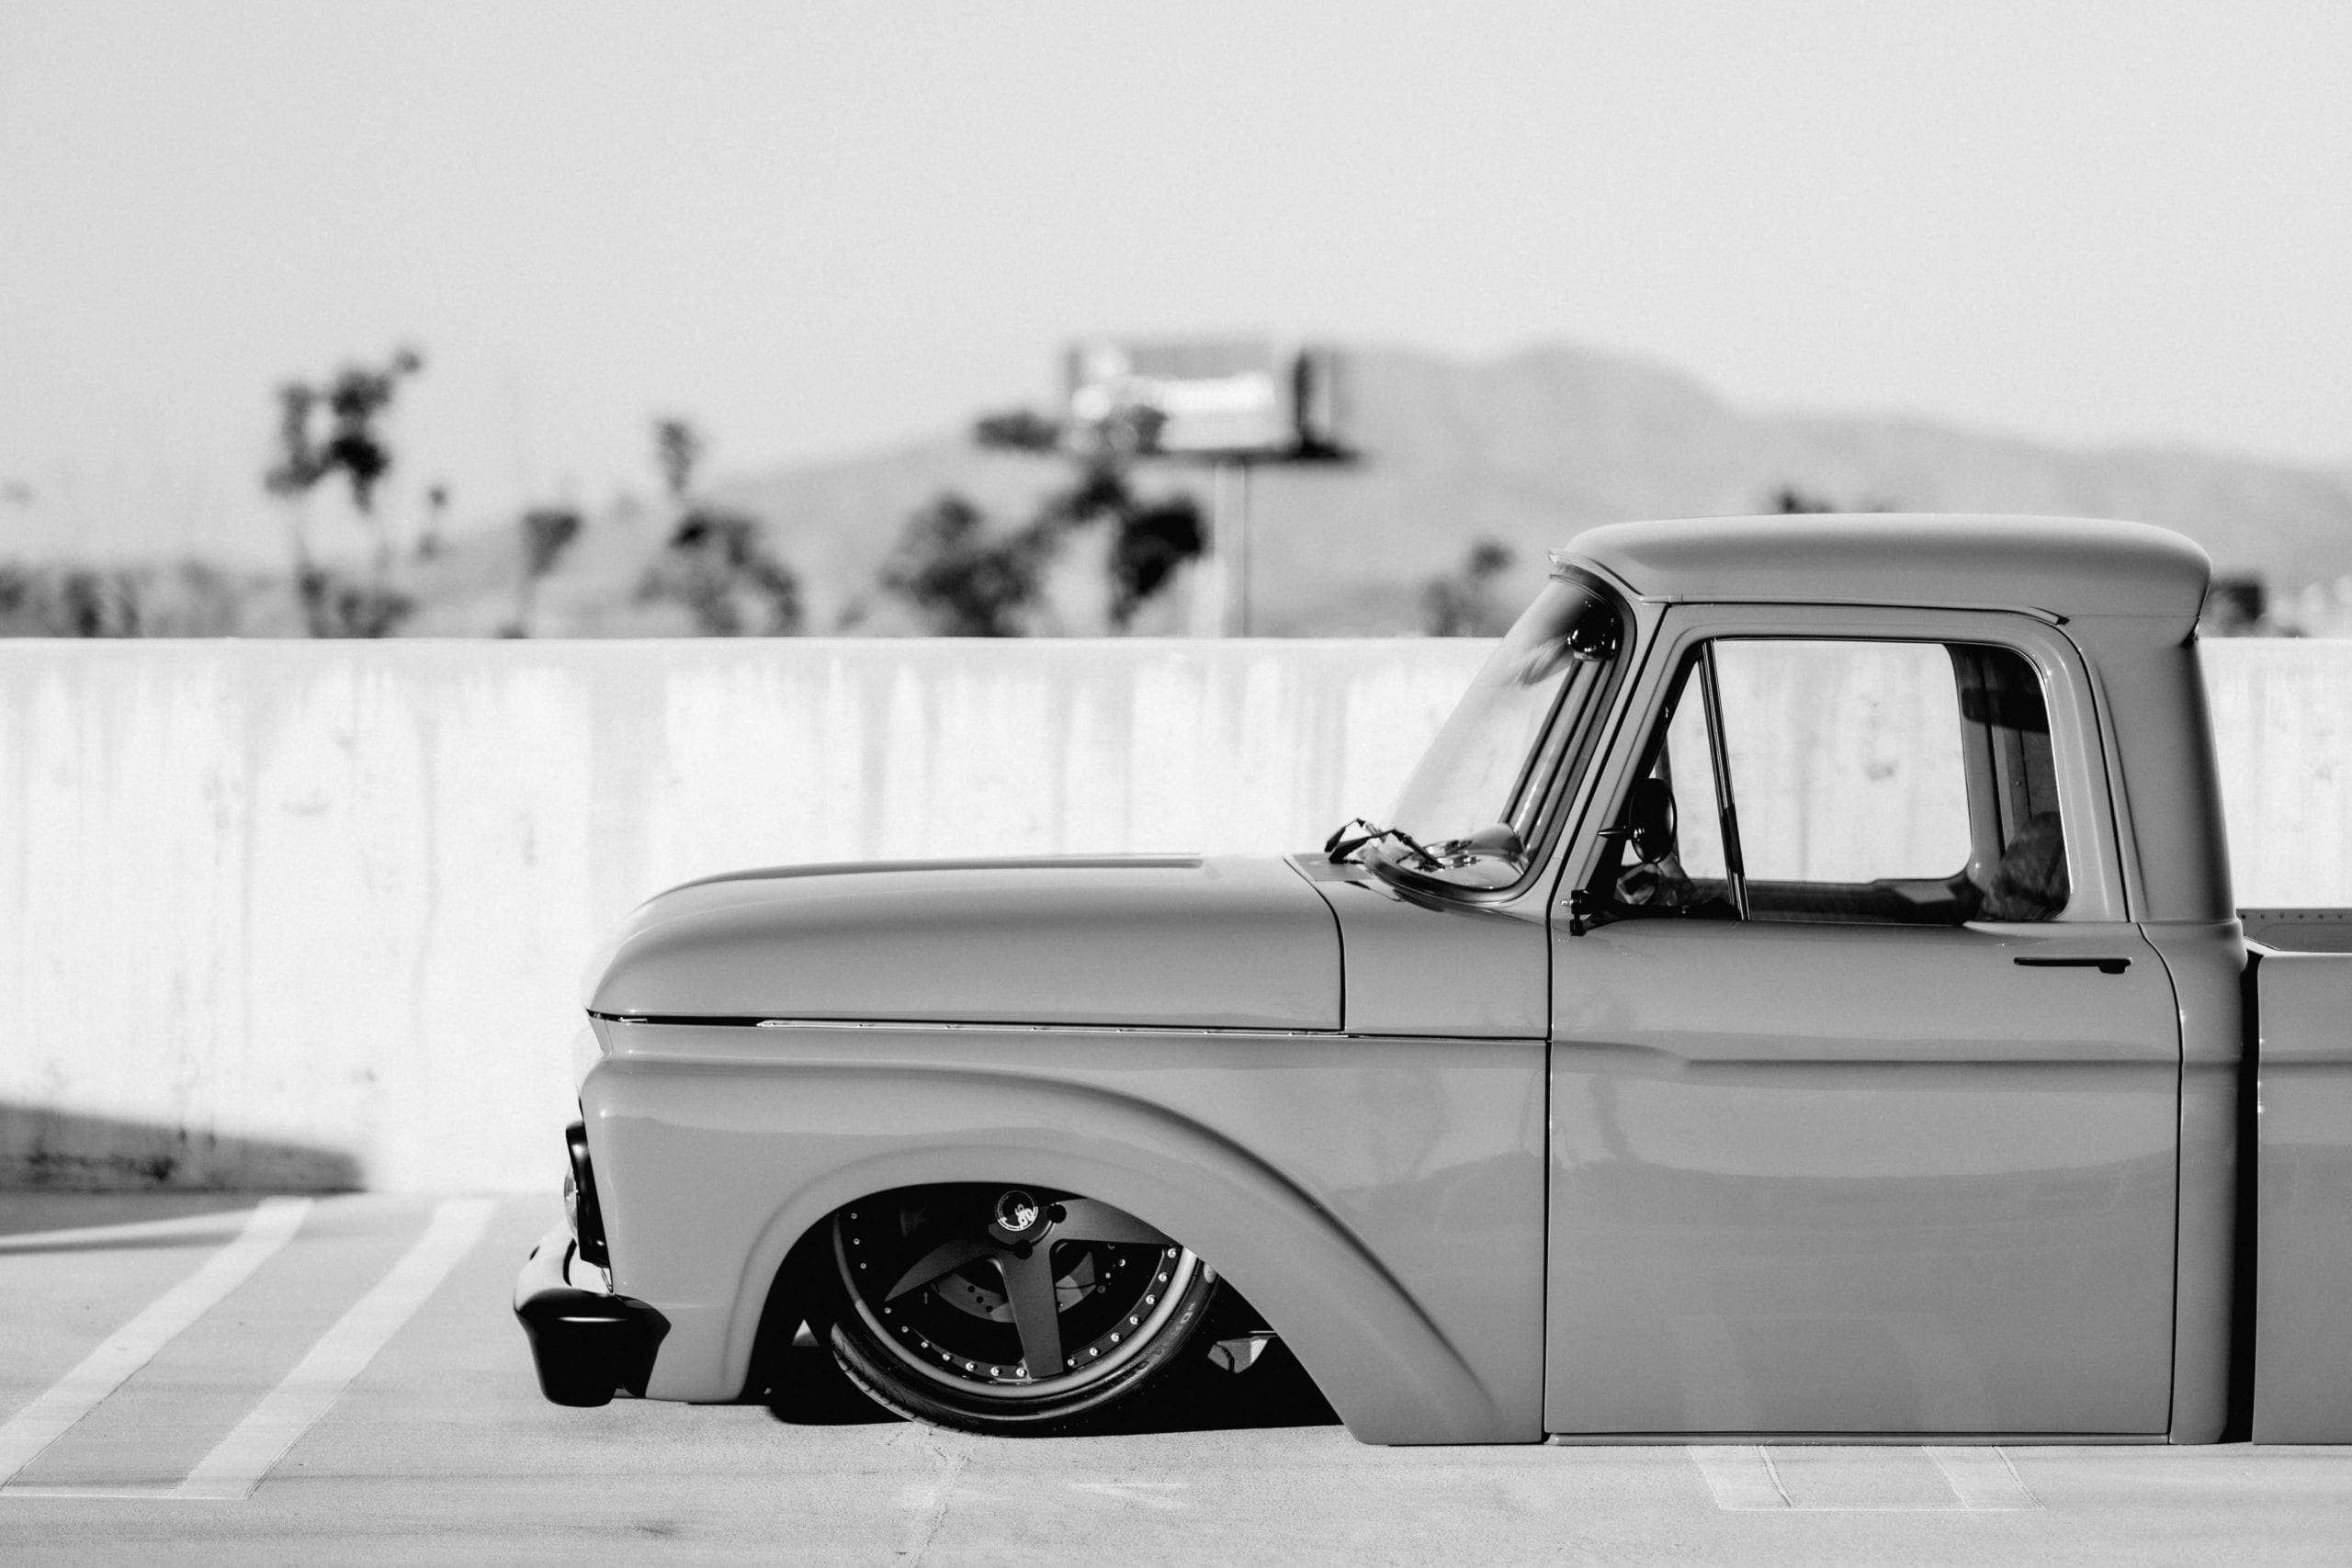 Custom Aftermarket A/C Low-rider Truck